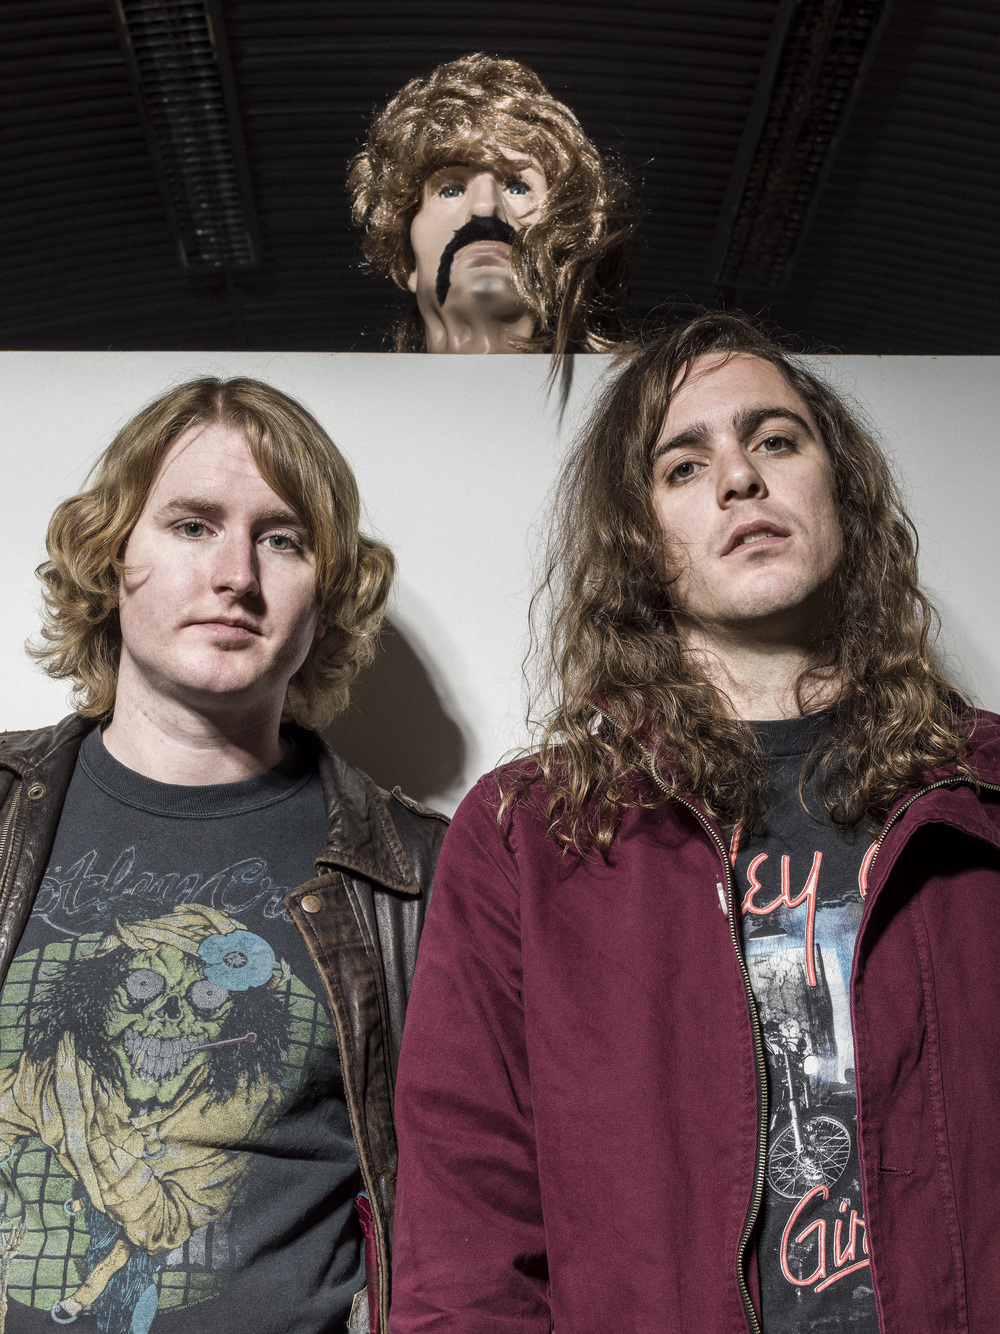 DZ Deathrays (Infectious)